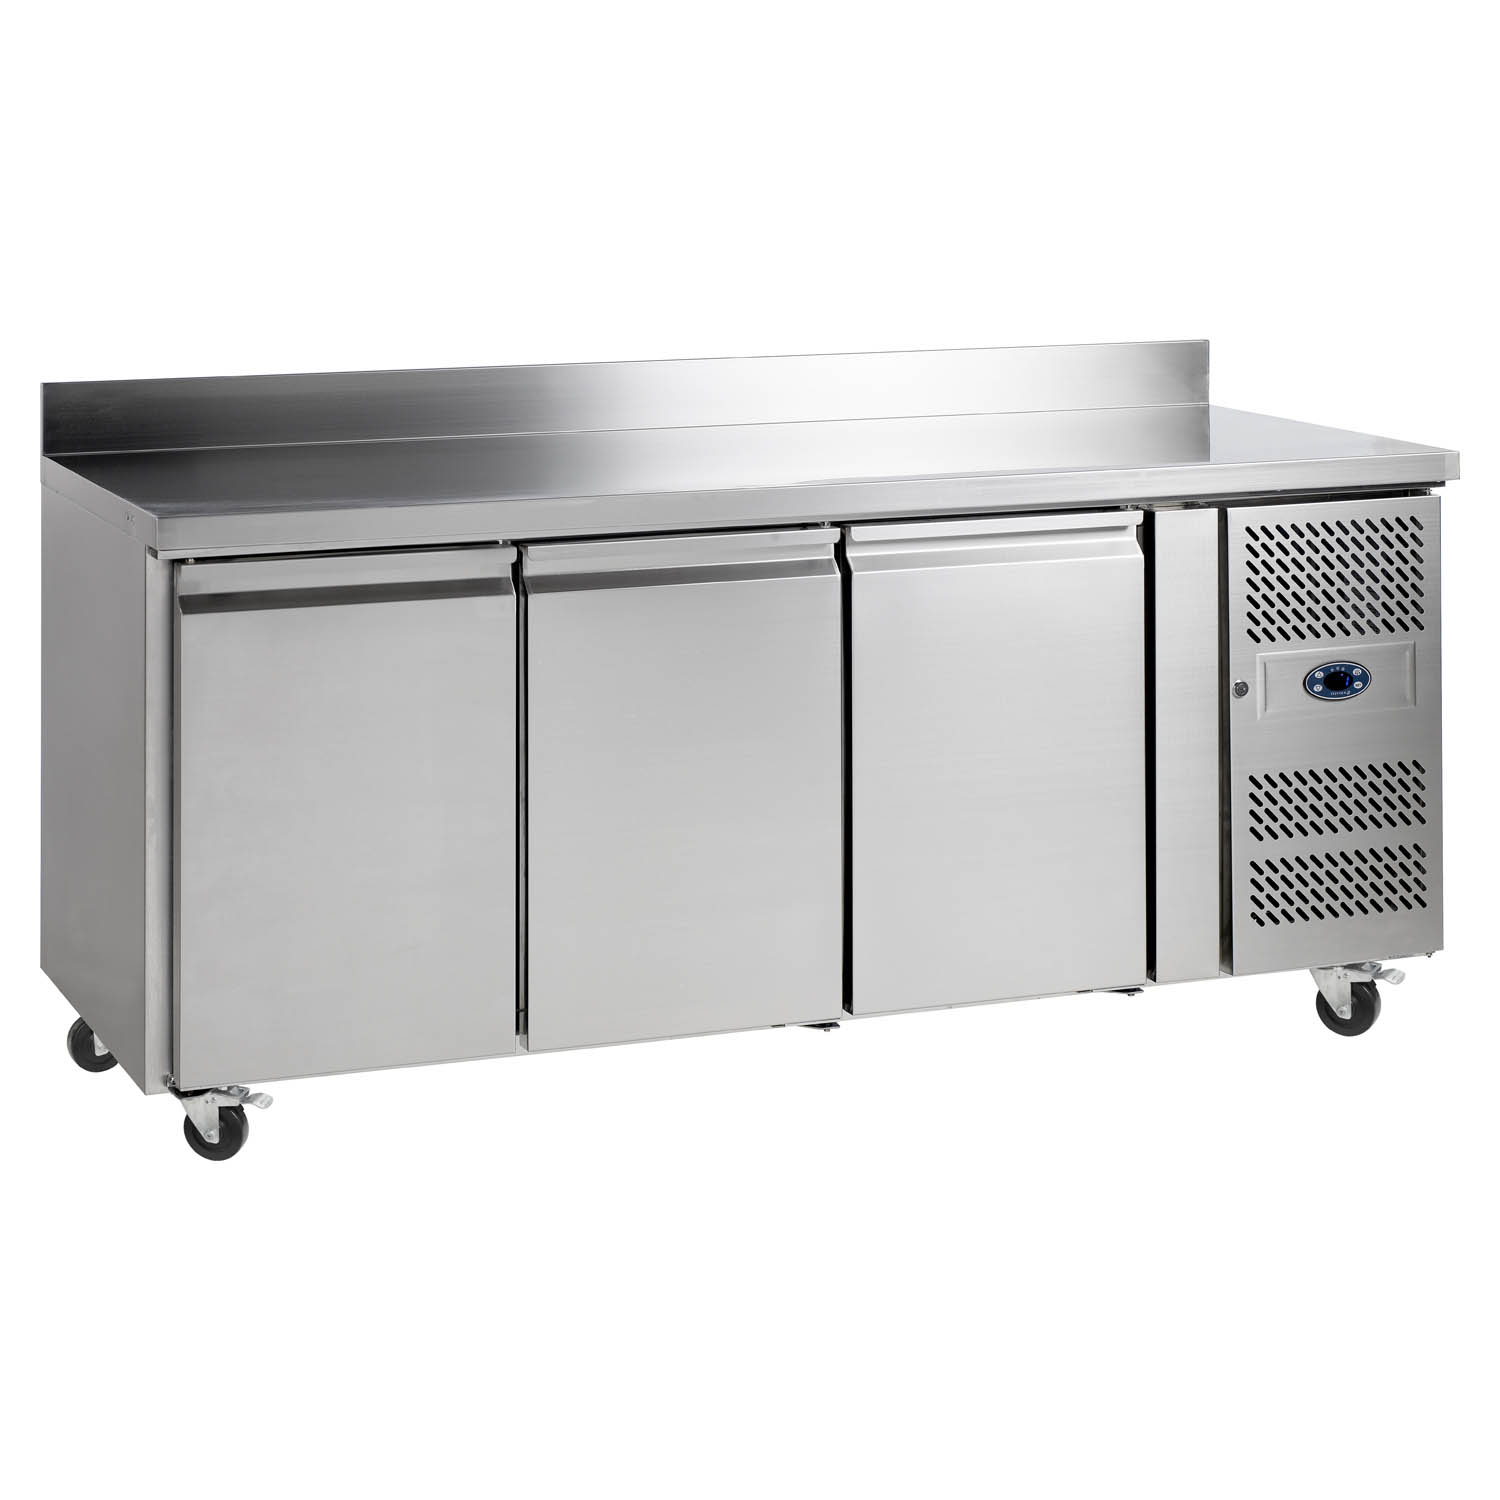 Tefcold CK7310B SS Gastronorm Counter 3-Door Chiller with Splashback